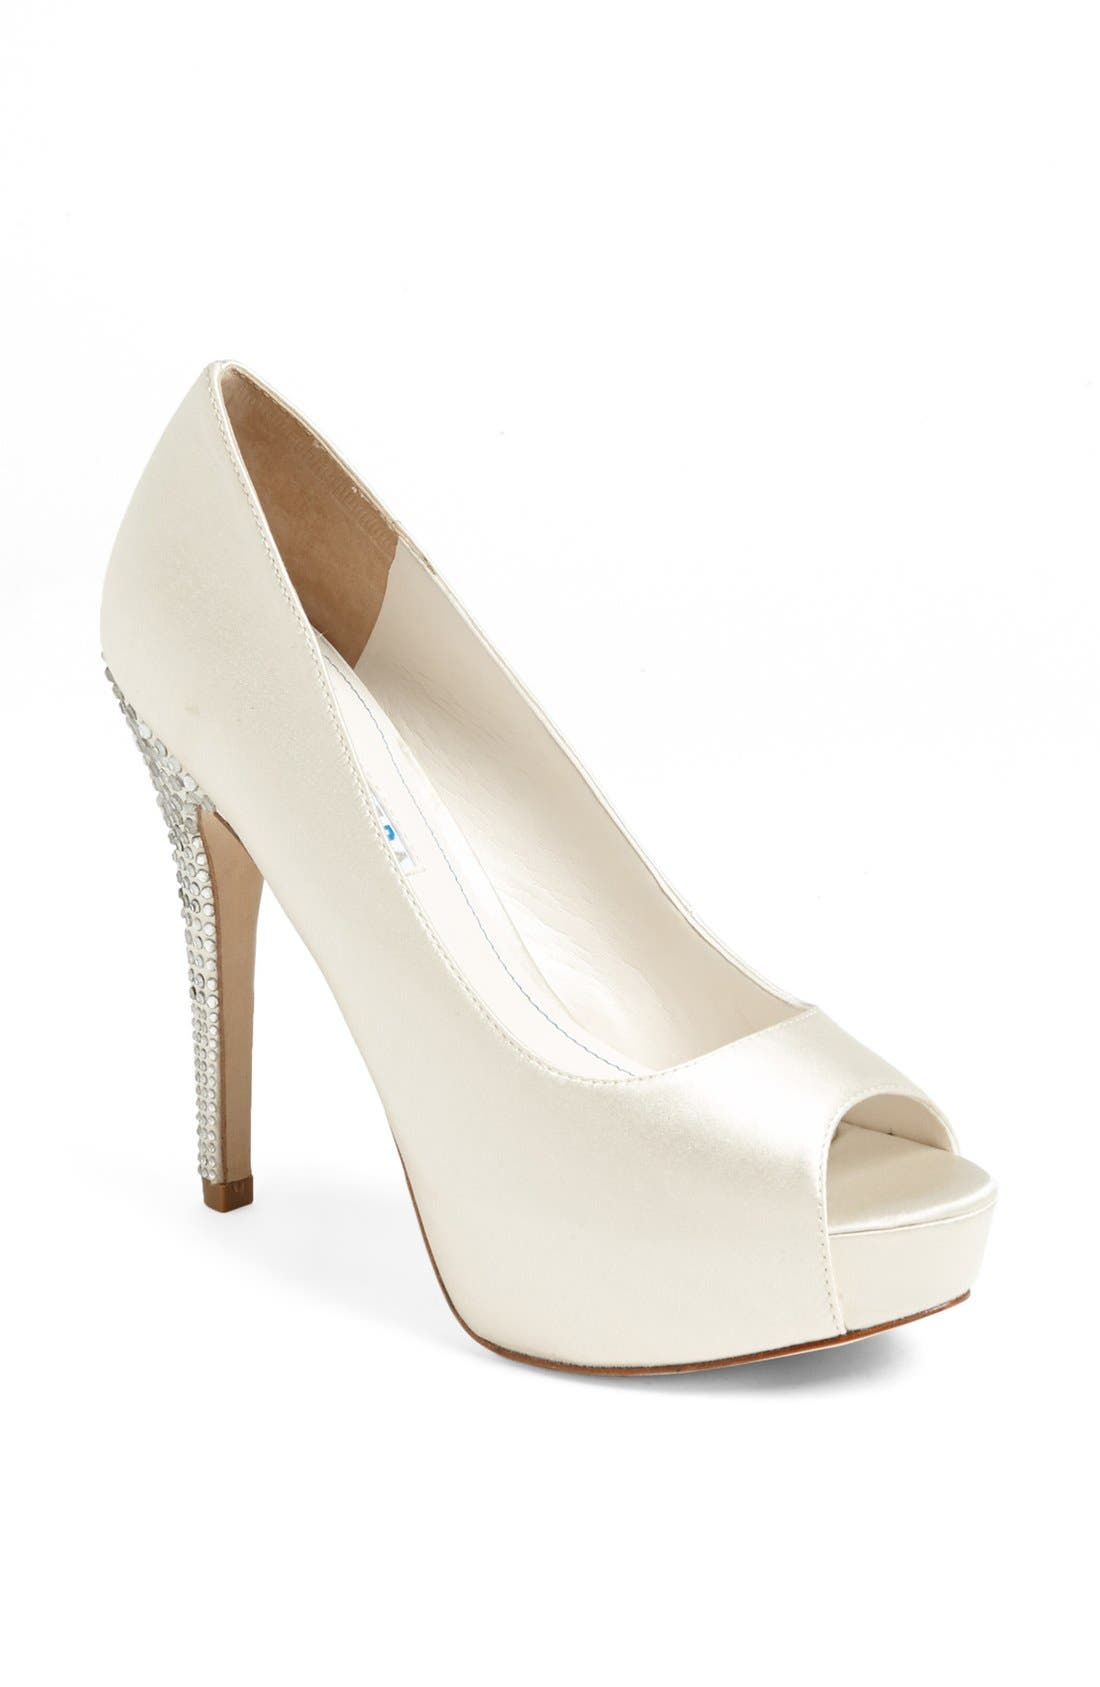 Alternate Image 1 Selected - David Tutera 'Princess' Pump